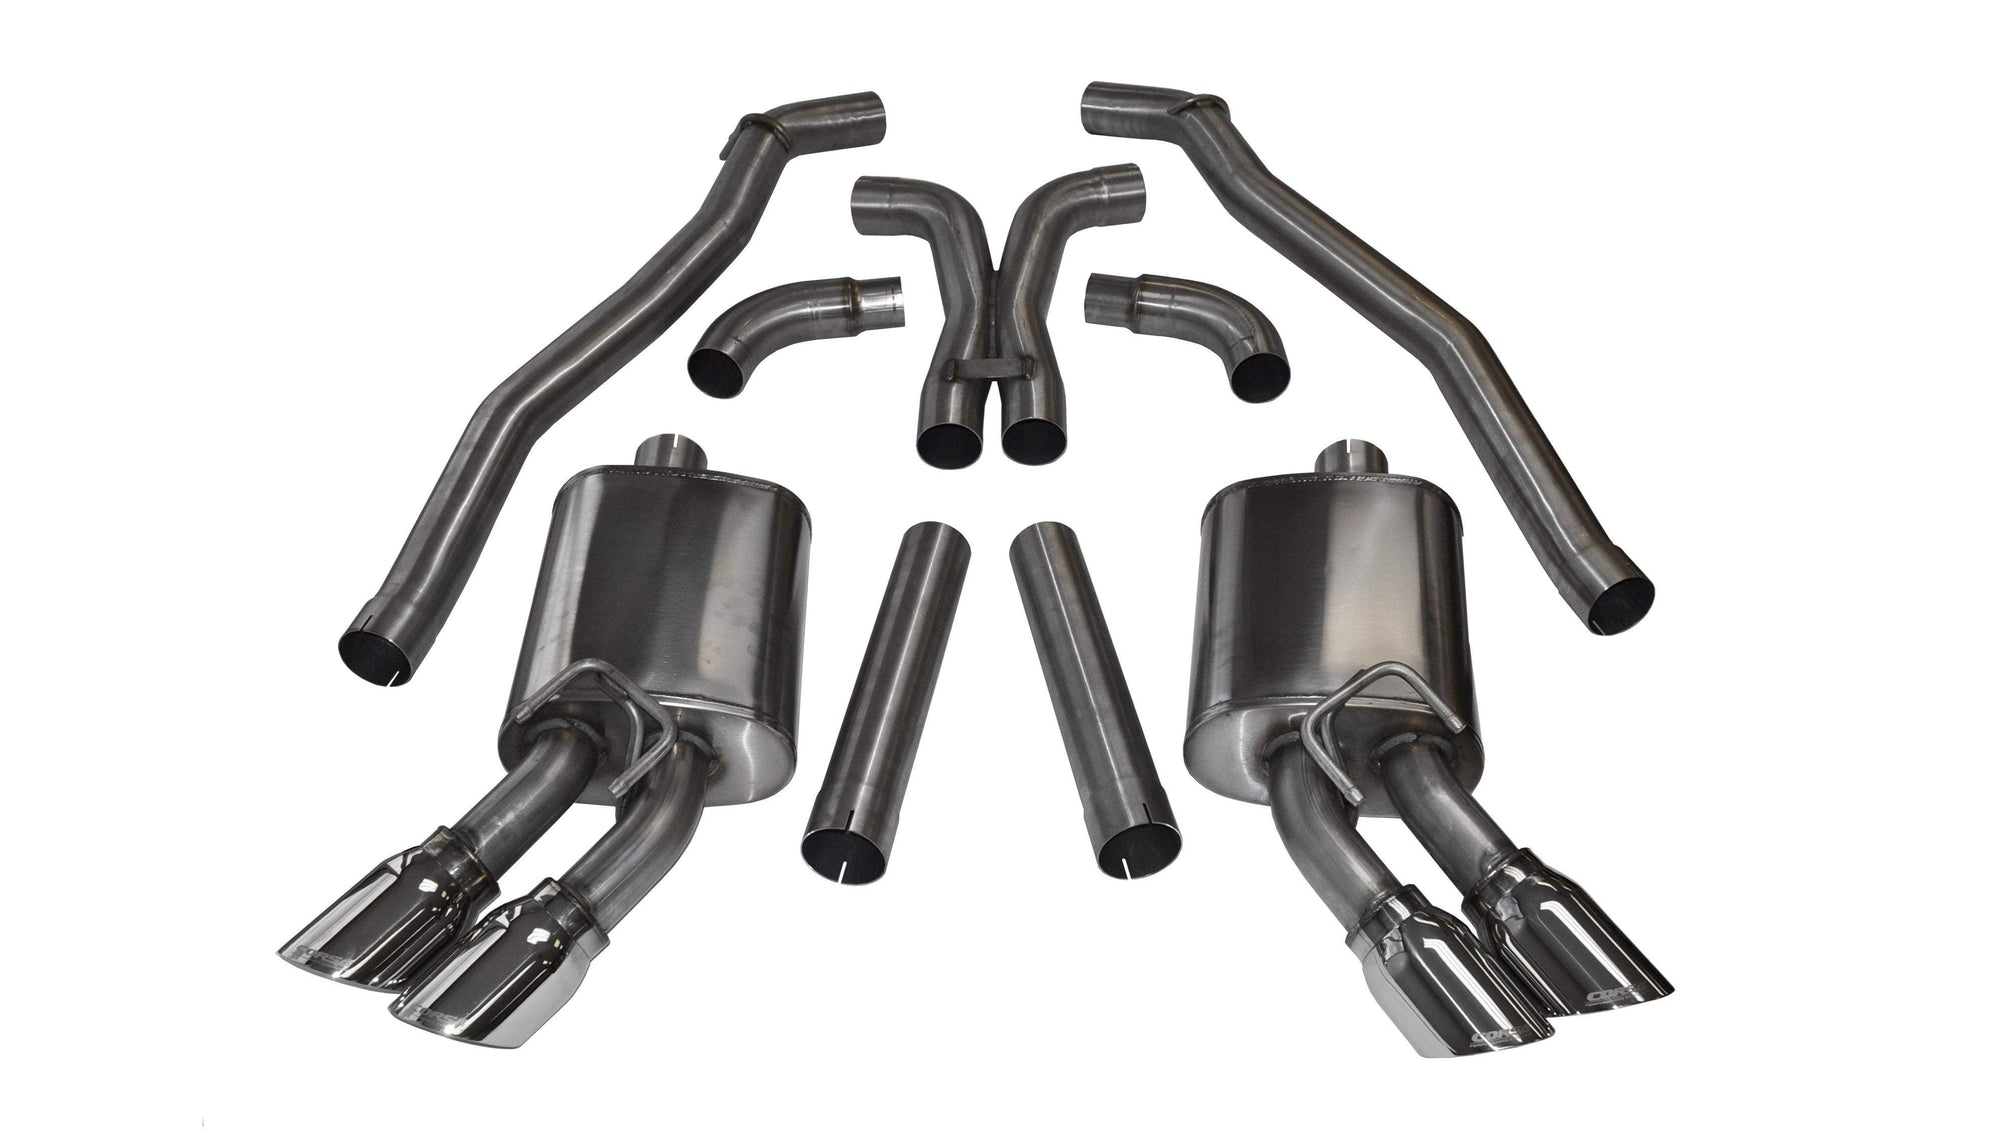 "CORSA PERFORMANCE Cat-Back Exhaust Polished / Sport / Dual Rear - Twin 4.0in 2012-2015 Chevrolet Camaro ZL1 (Coupe) & 10-15 SS 1 LE Coupe, 6.2L V8, 3.0"" Dual Rear Exit Catback Exhaust System with Twin 4.0"" Tips (14971) Sport Sound Level"